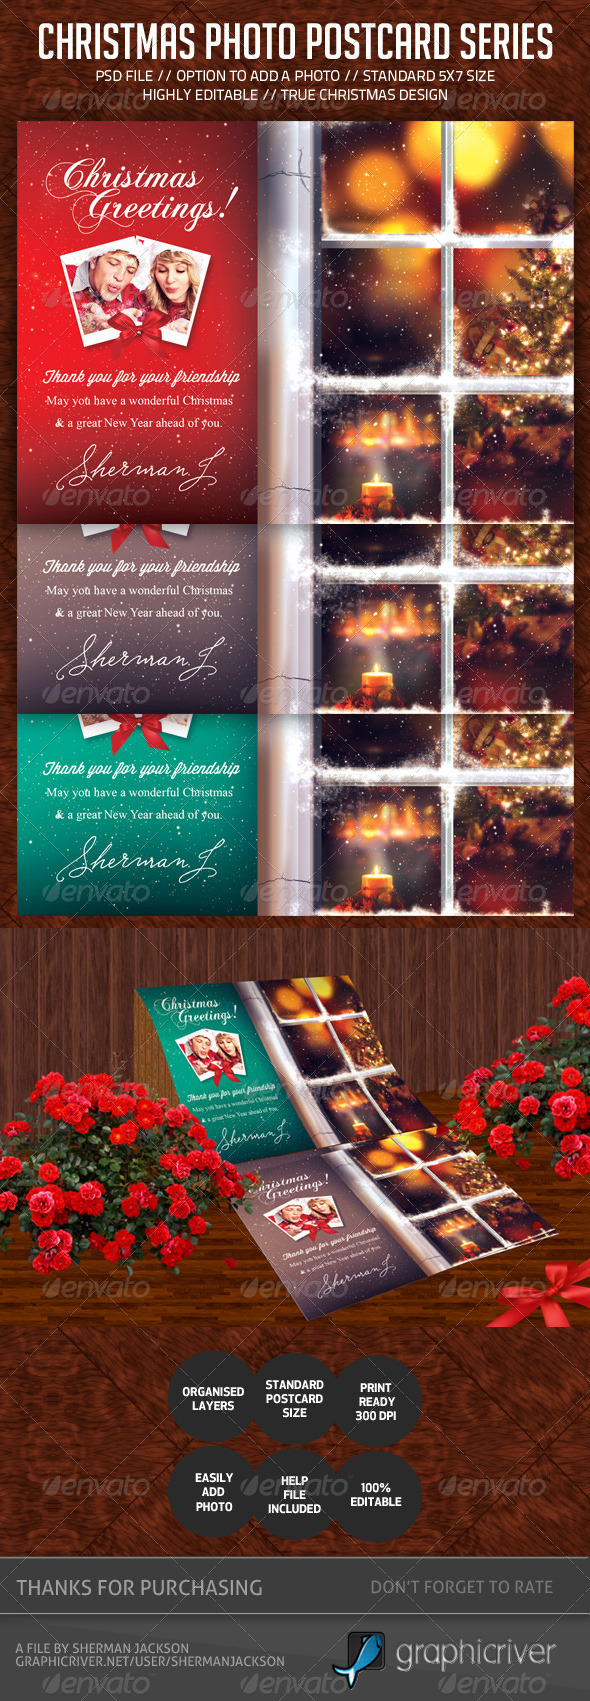 Christmas Postcard V.2 - Holiday Greeting Cards